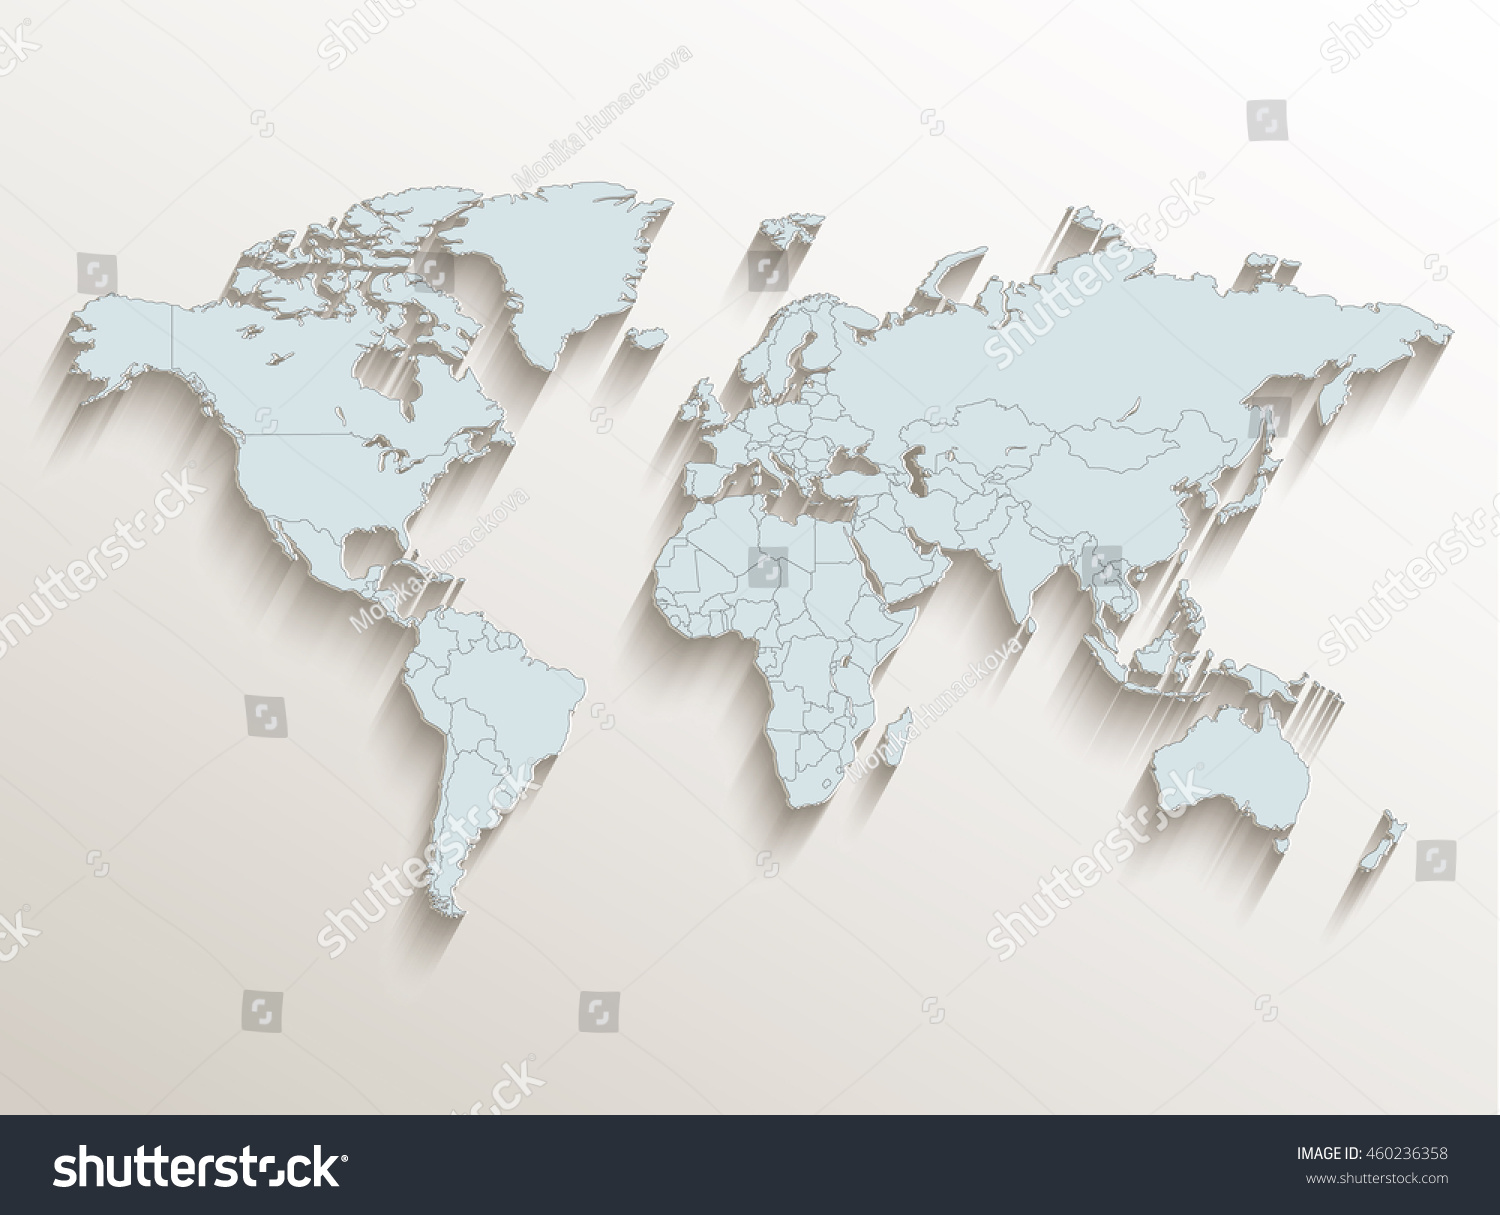 World political map white blue 3d stock illustration 460236358 world political map white blue 3d raster gumiabroncs Images